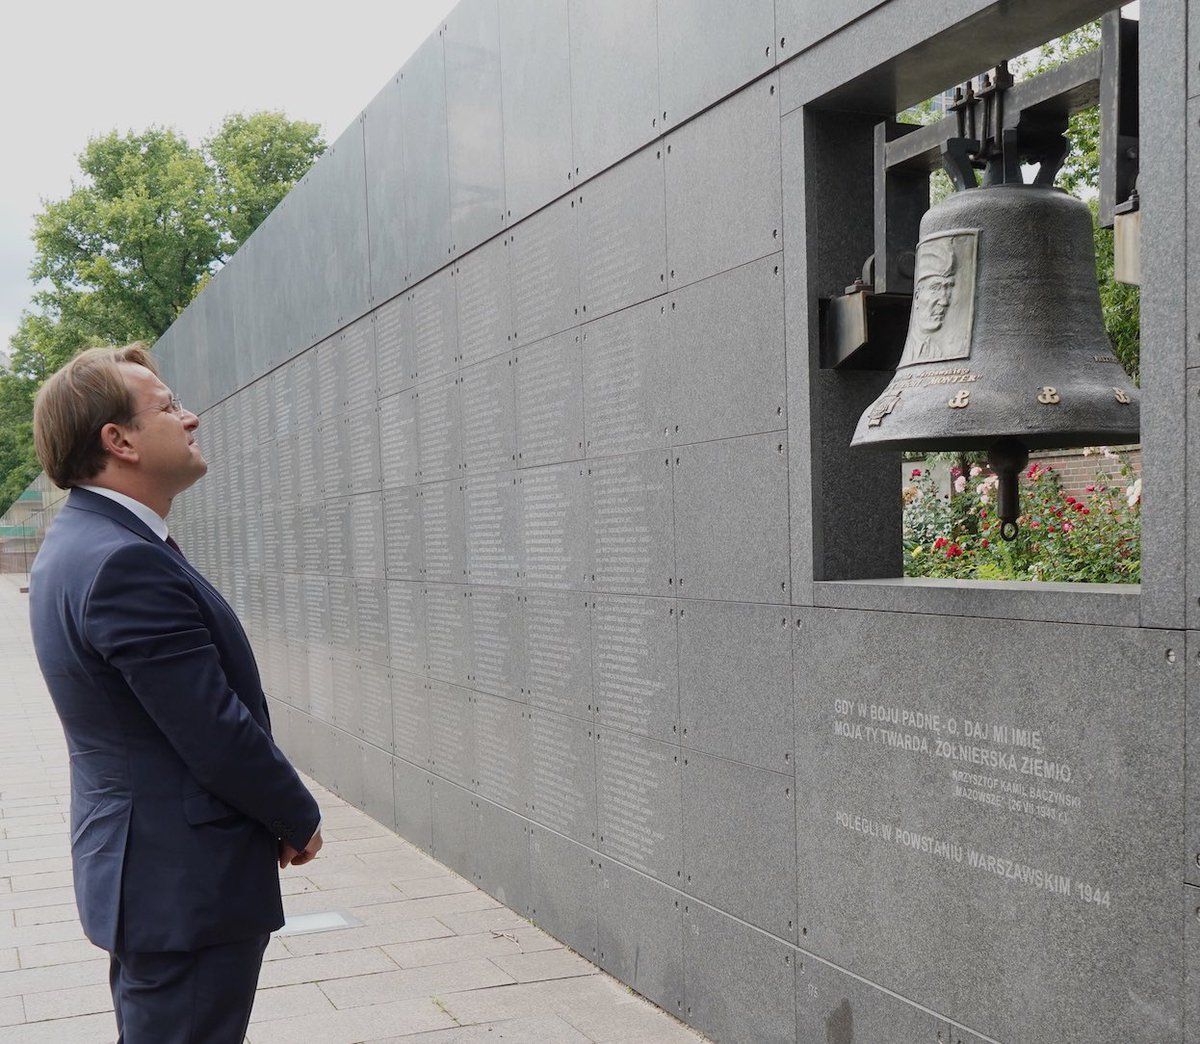 Paid my respect to the heroes of the #WarsawUprising at their dedicated museum @1944pl in Warsaw today. Their struggle for freedom & against totalitarianism should never be forgotten. History cannot repeat itself!